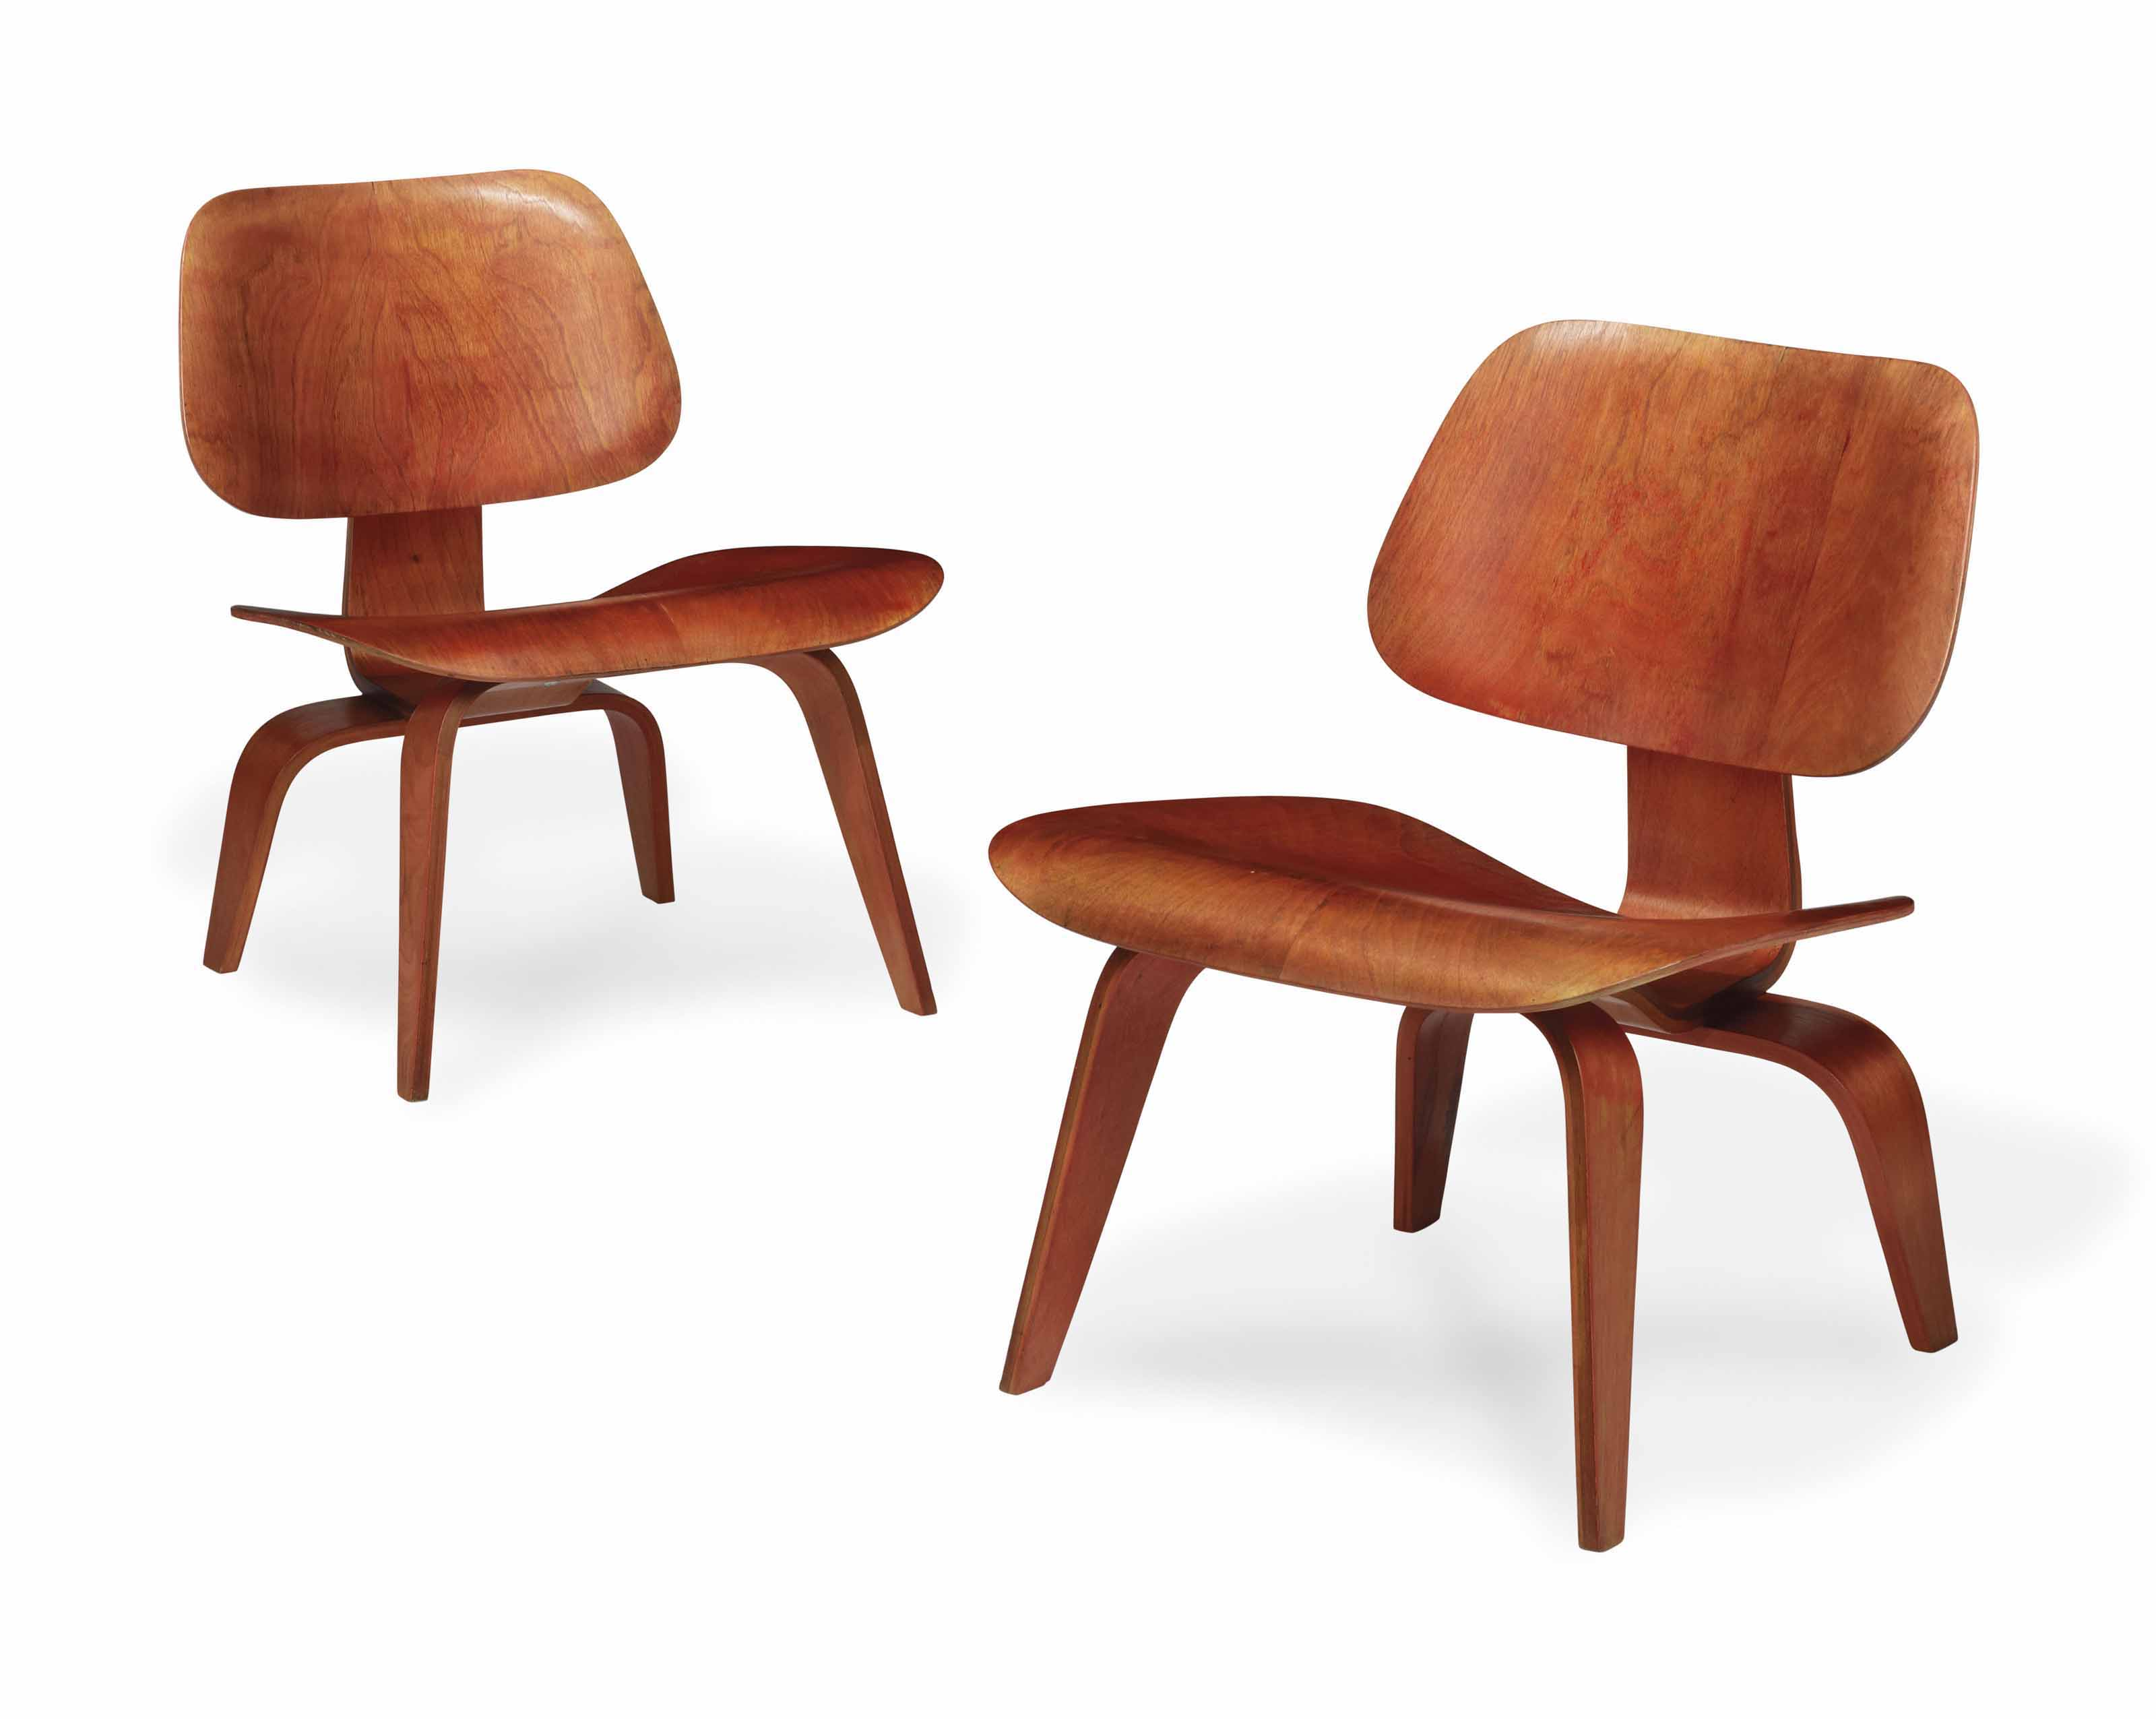 CHARLES (1907-1978) AND RAY (1912-1988) EAMES